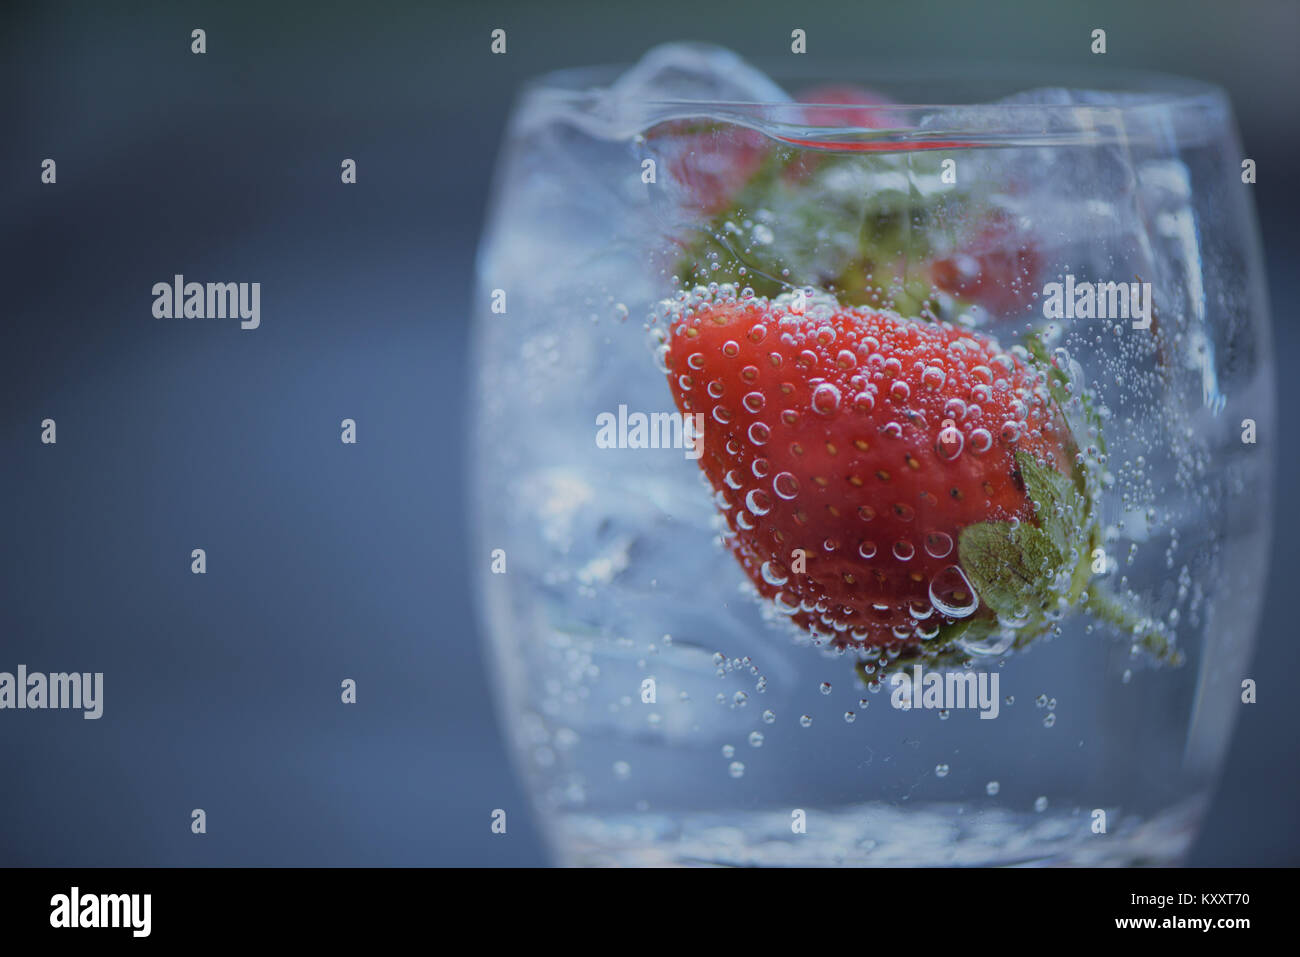 refreshing food and drink macro close up photography image of red fruit strawberry in a glass of ice cubes and sparkling - Stock Image